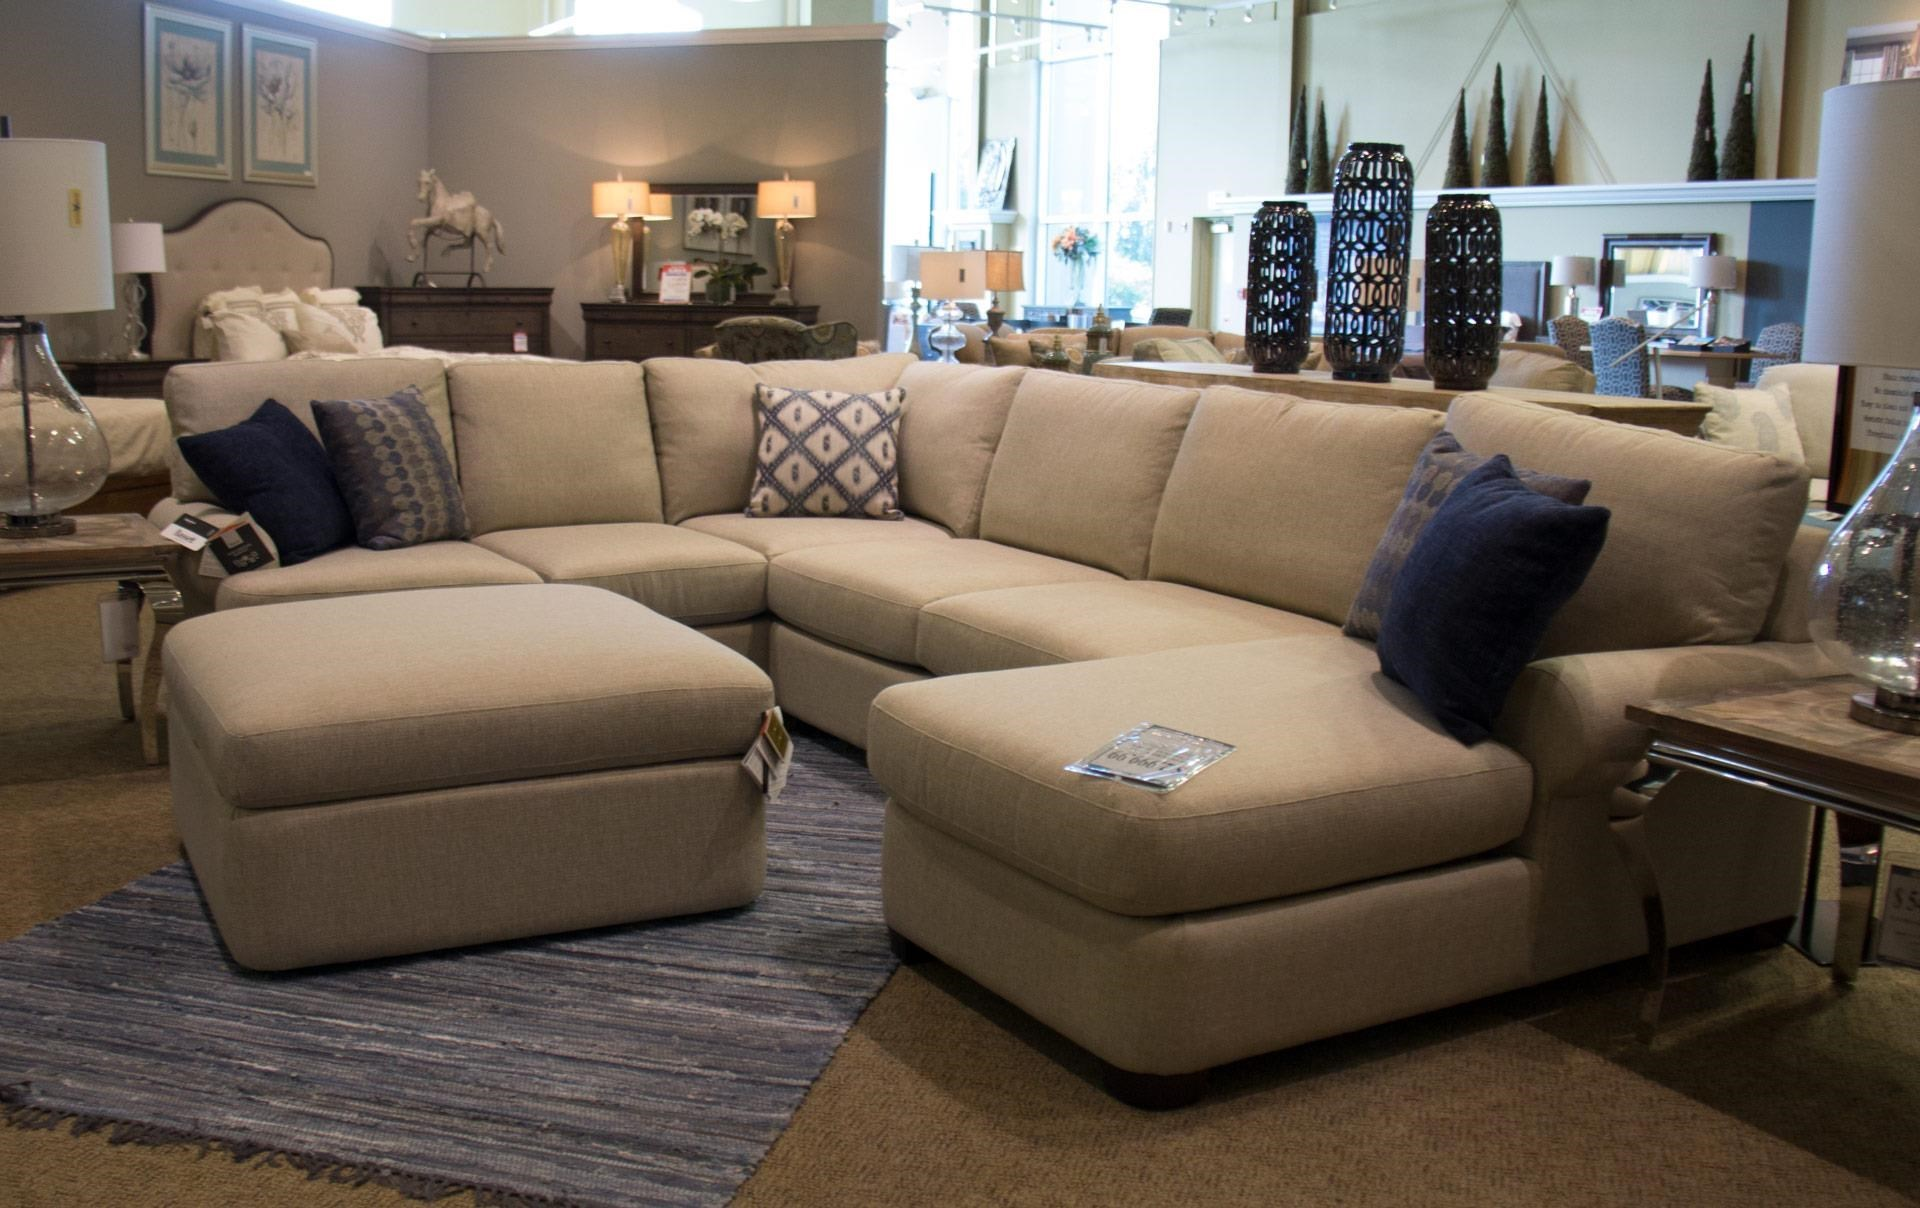 Bassett Monterey 3 Pc. Sectional Sofa - Great American Home Store - Sectional Sofas  sc 1 st  Great American Home Store : bassett sectional sofa - Sectionals, Sofas & Couches